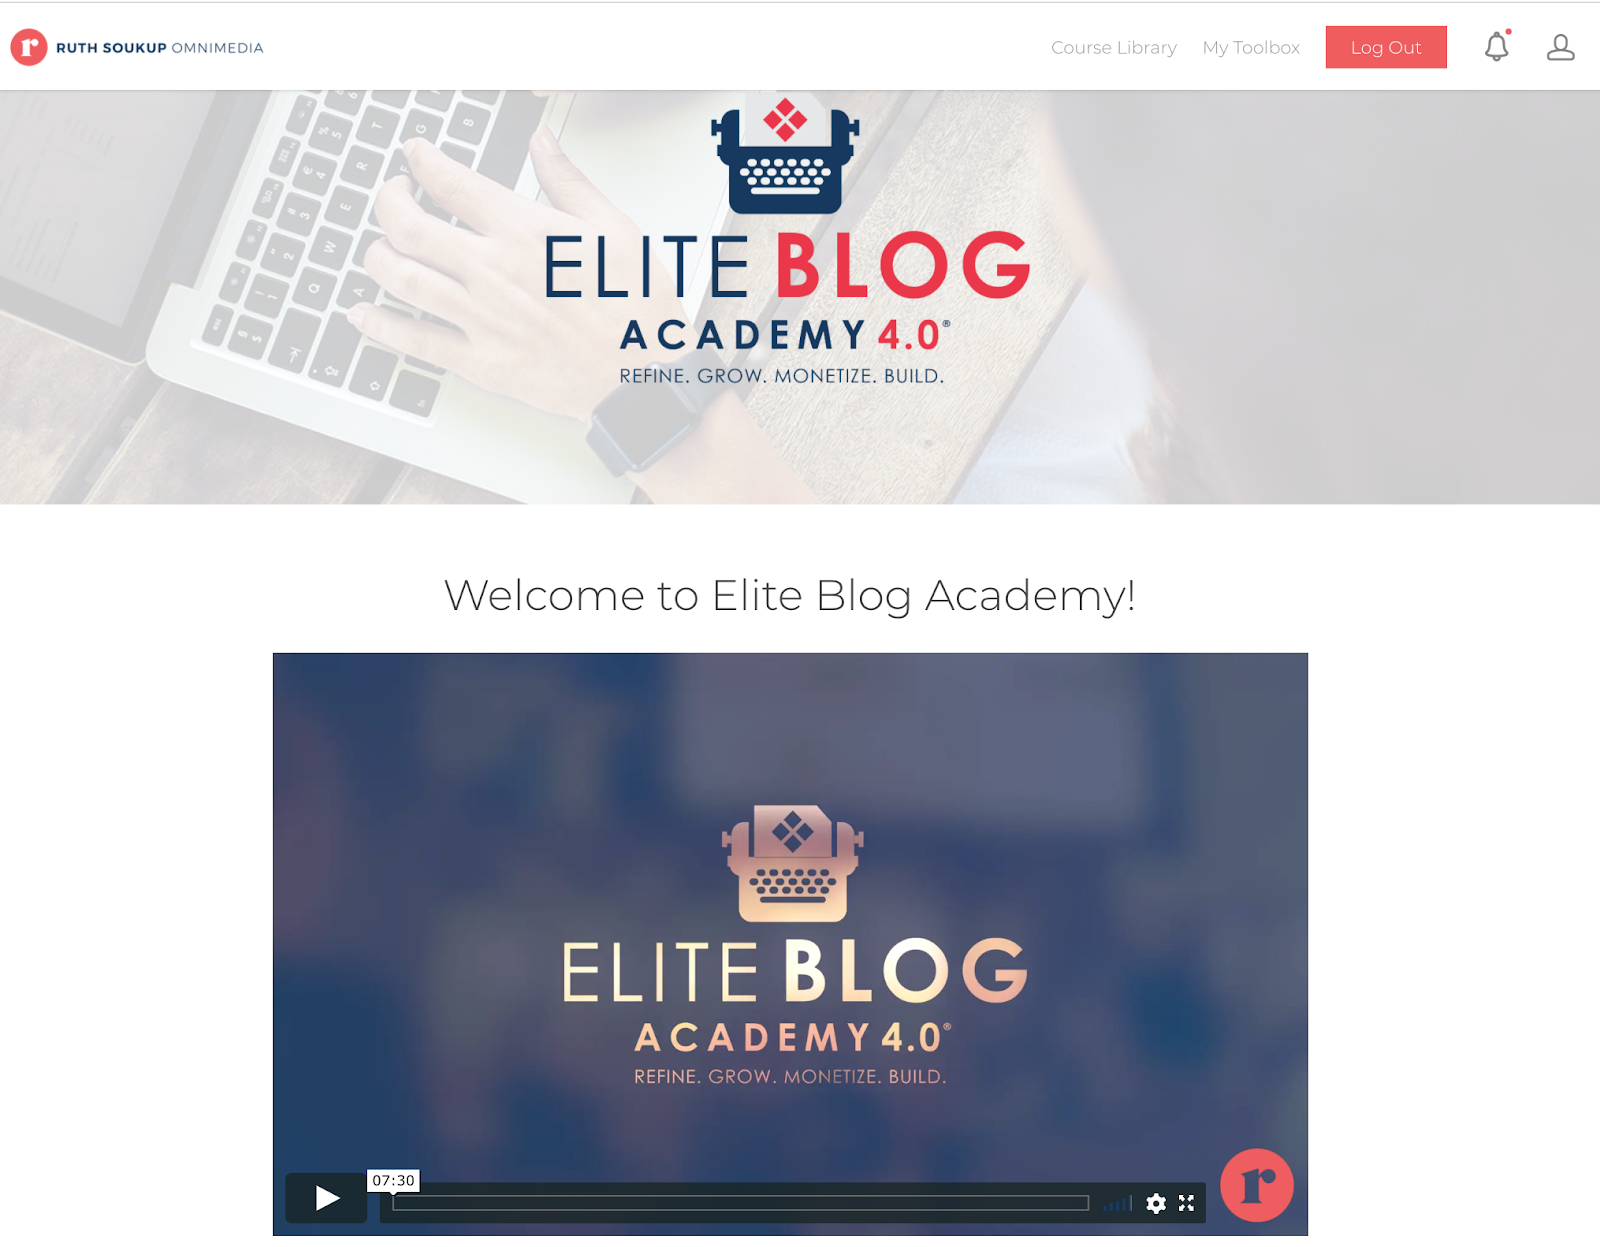 the introduction to Elite Blog Academy interface